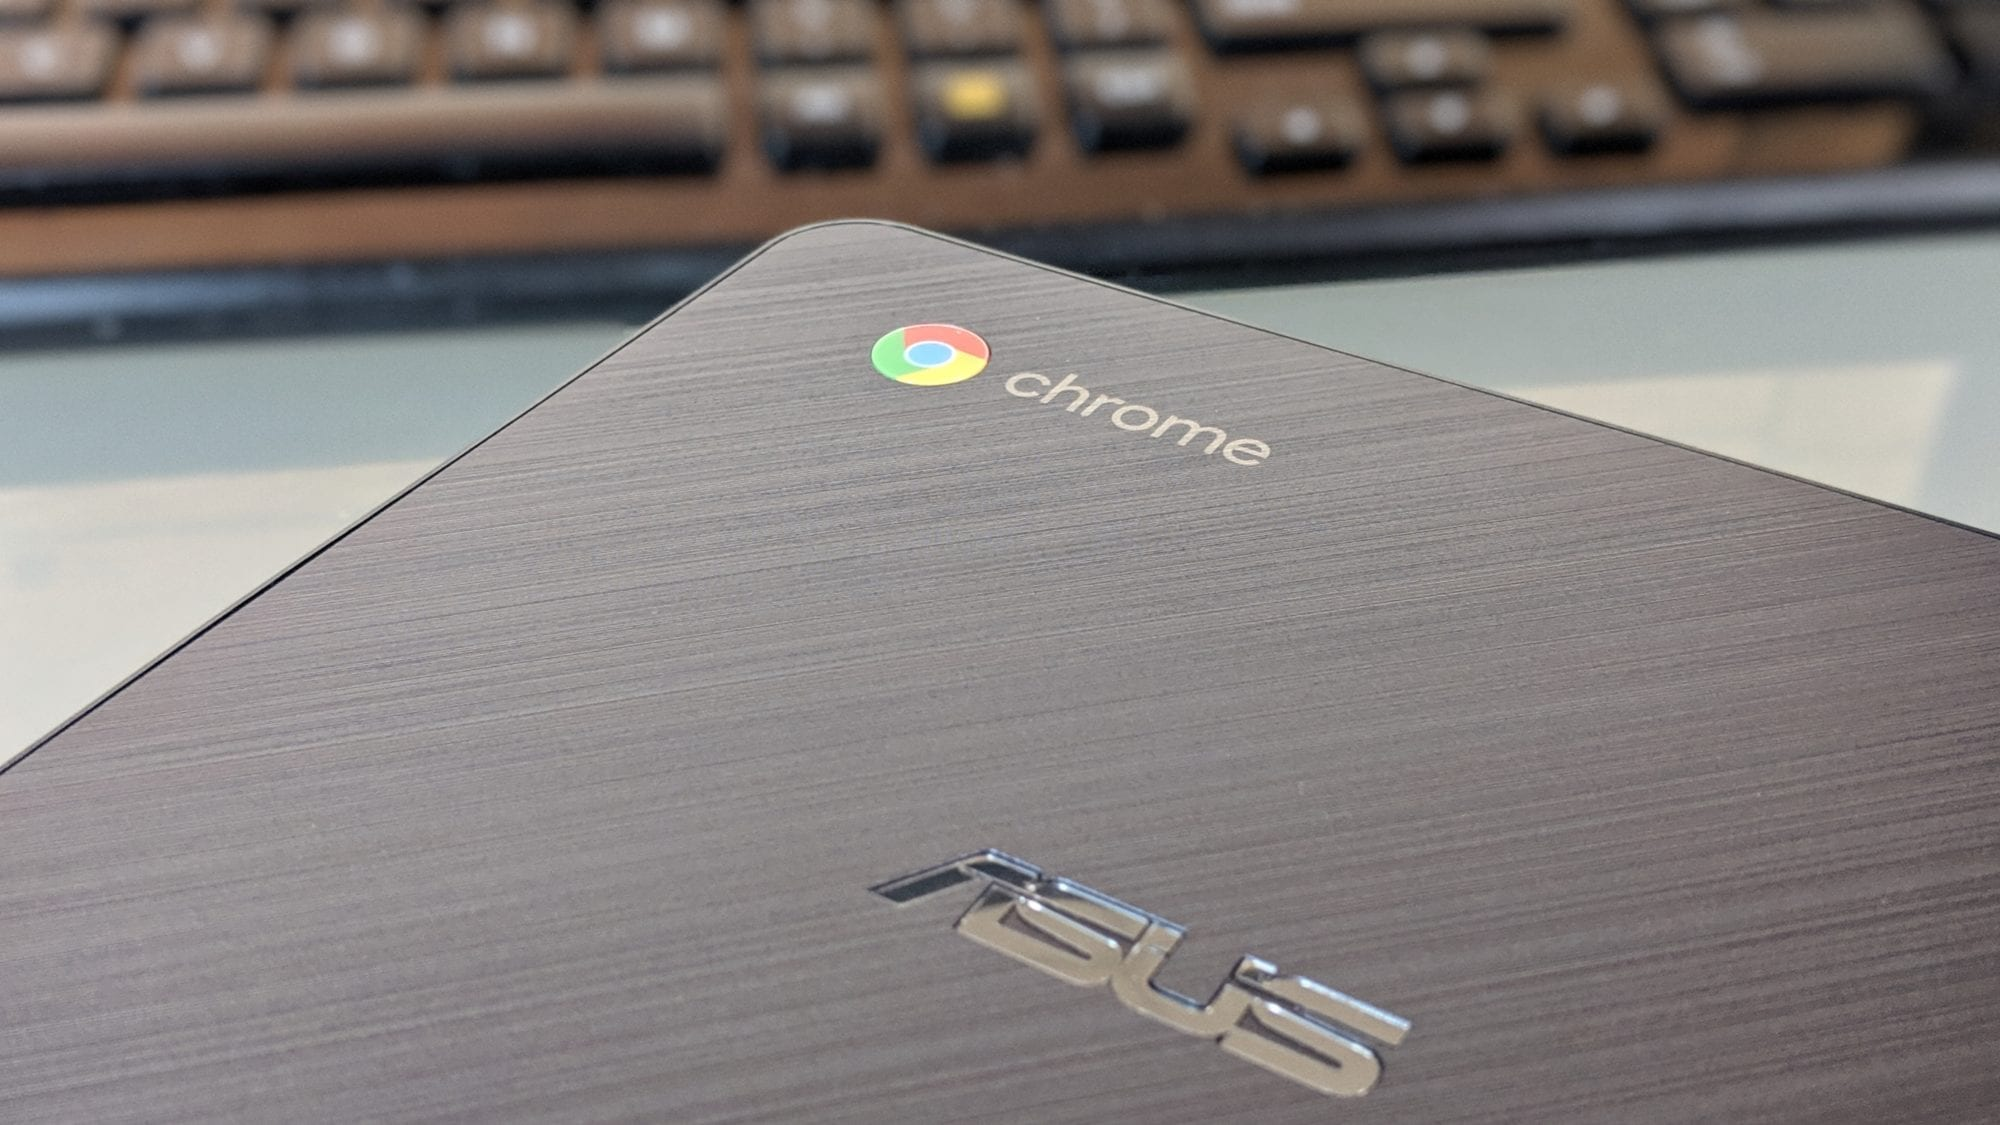 Chrome OS 70 Arriving With Updated Tablet UI, AV1 Codec, Extension Security And More